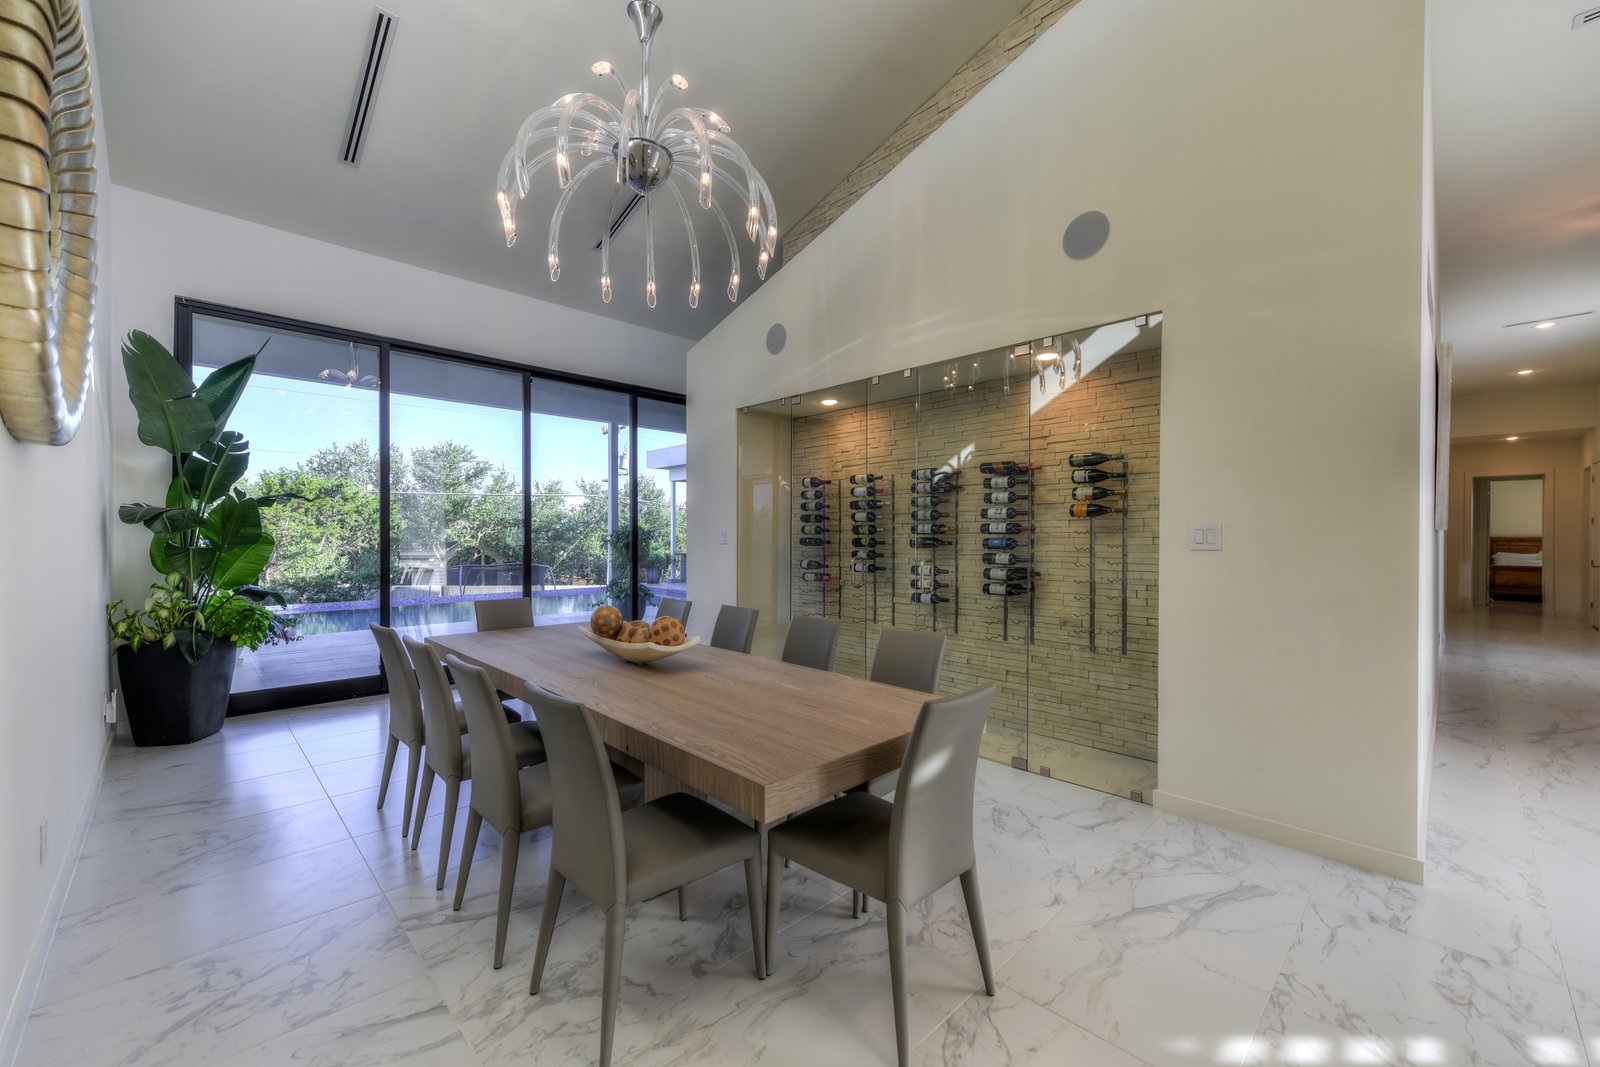 DINING ROOM - WINE  ORVANANOS HOUSE by OSCAR E FLORES DESIGN STUDIO